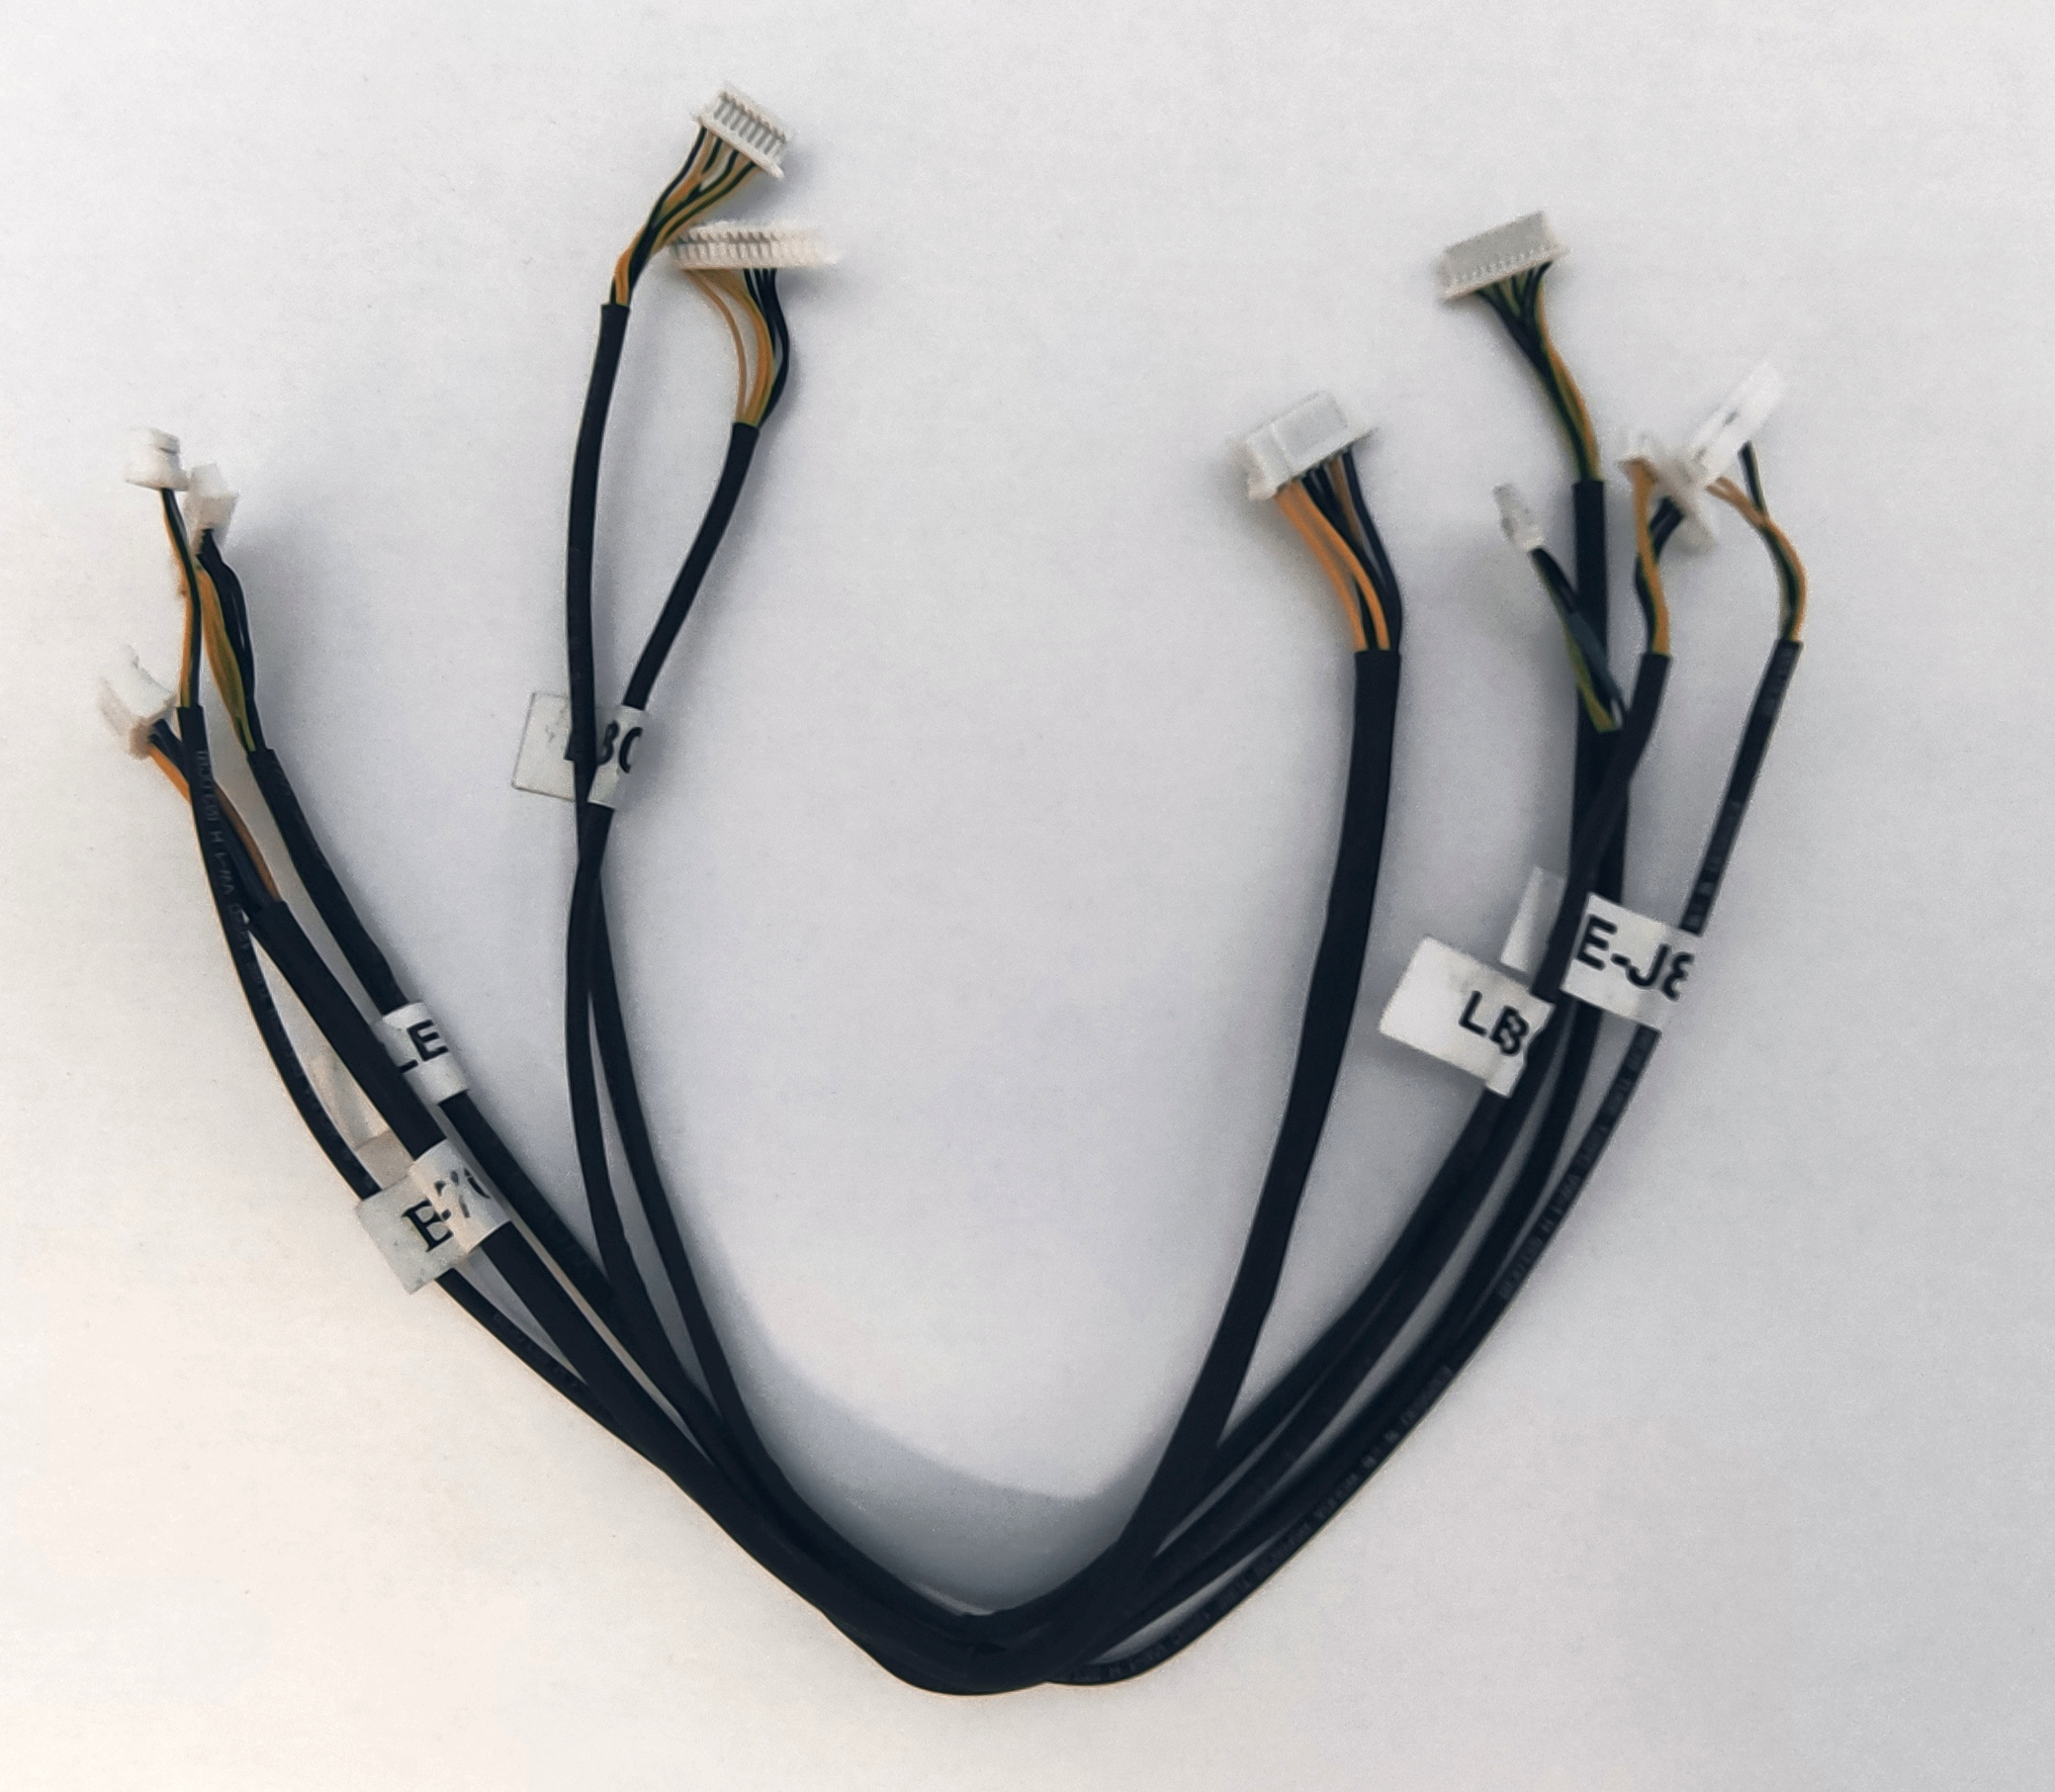 BT-cable-70638